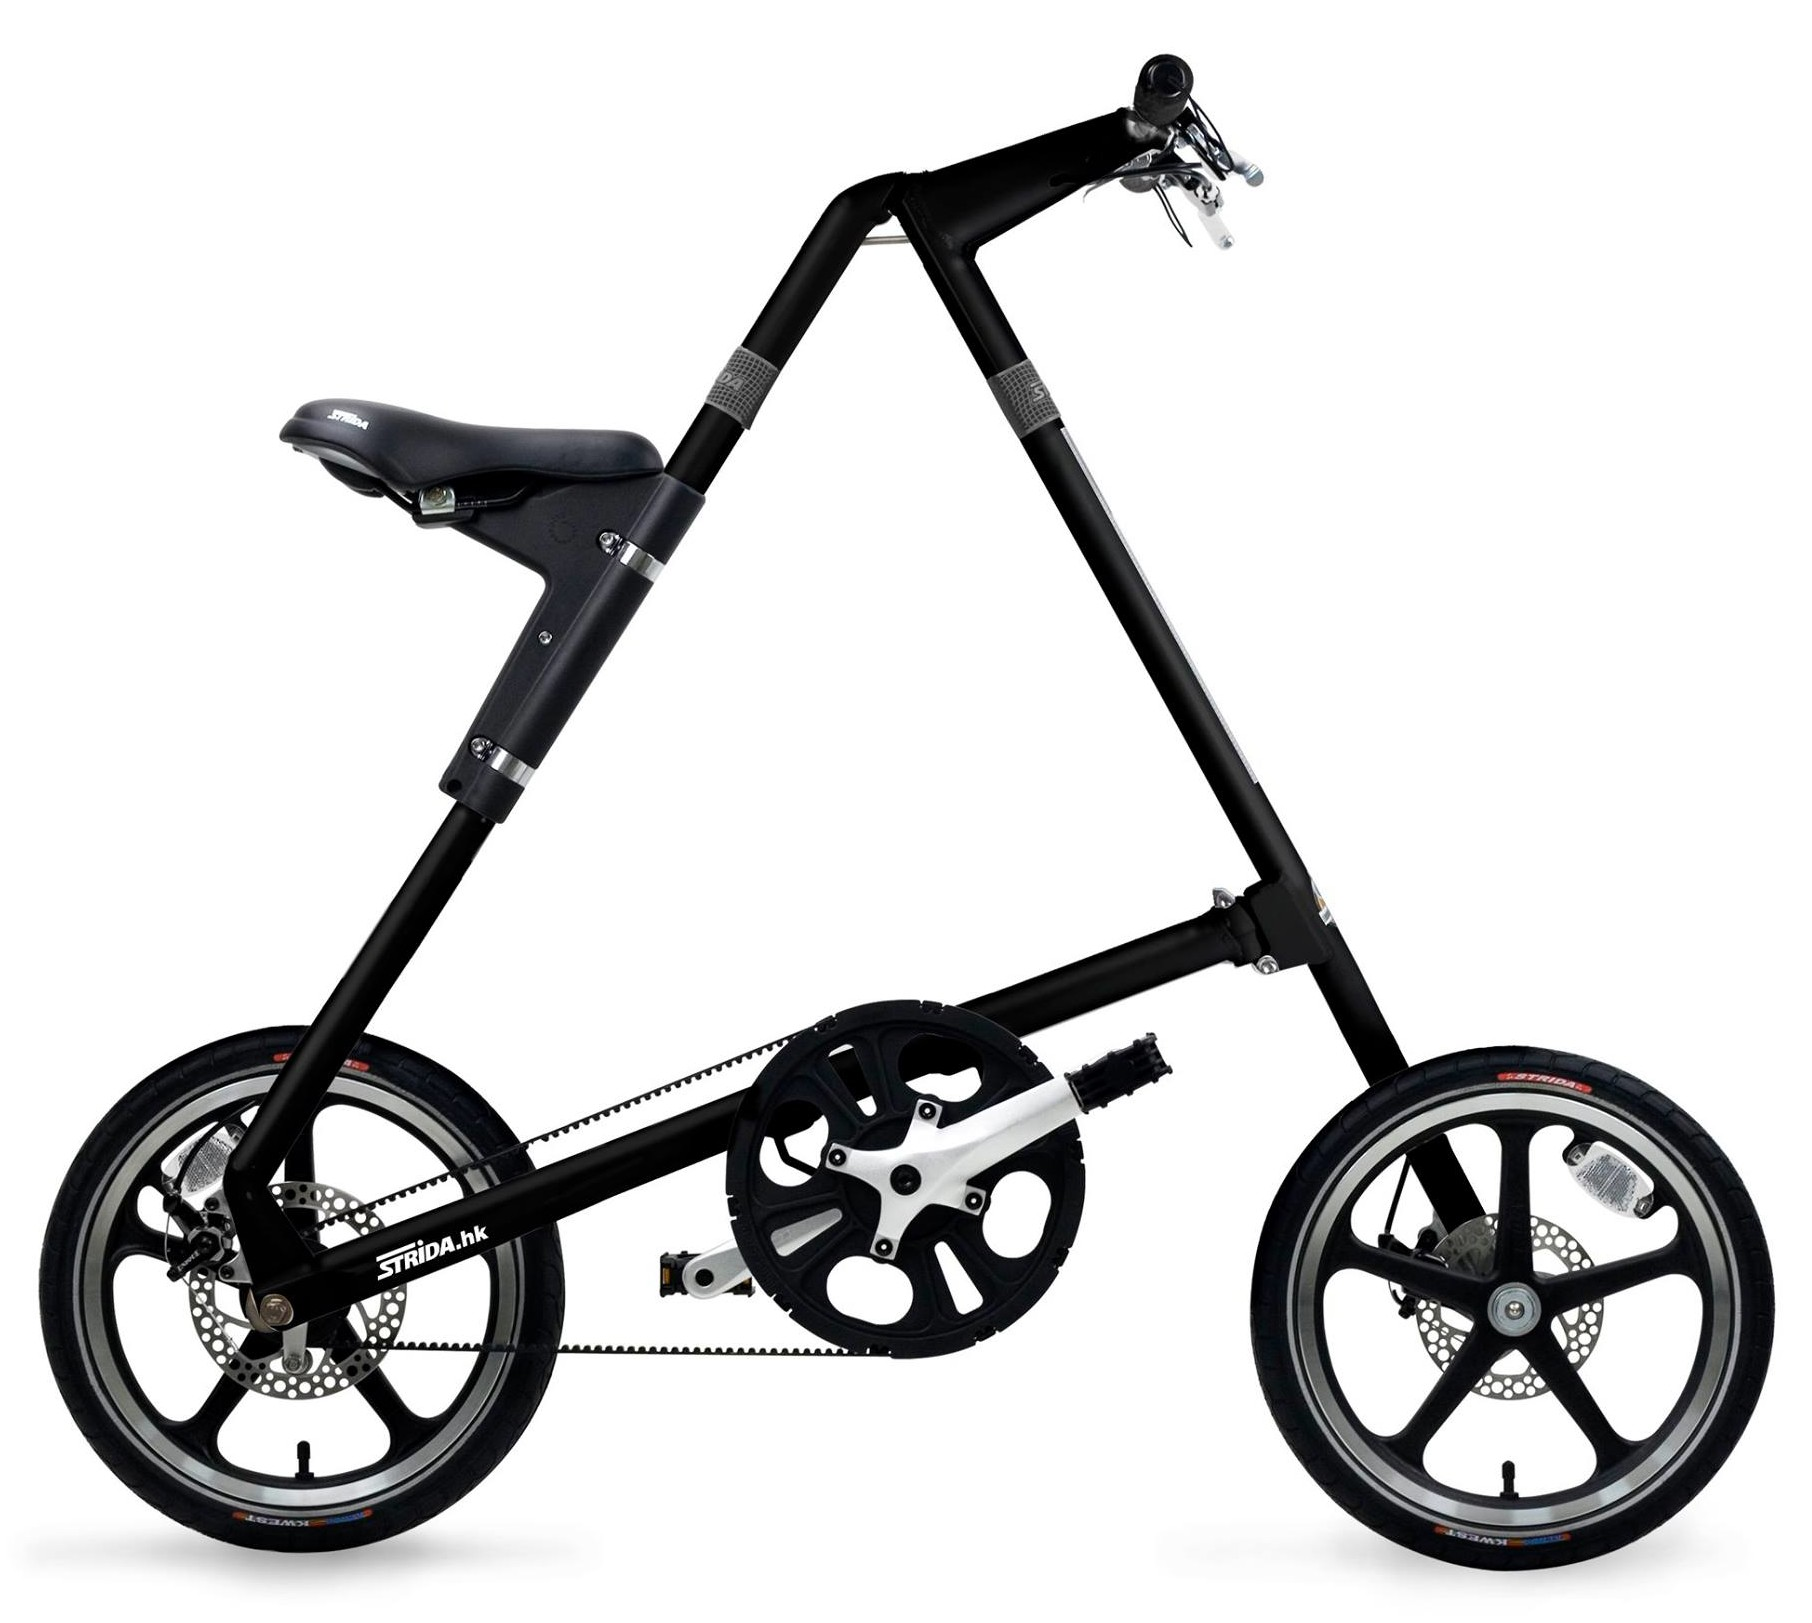 STRiDA LT Black strida lt STRiDA LT 12646842 931791860248225 2955366123362125666 o e1457853880707